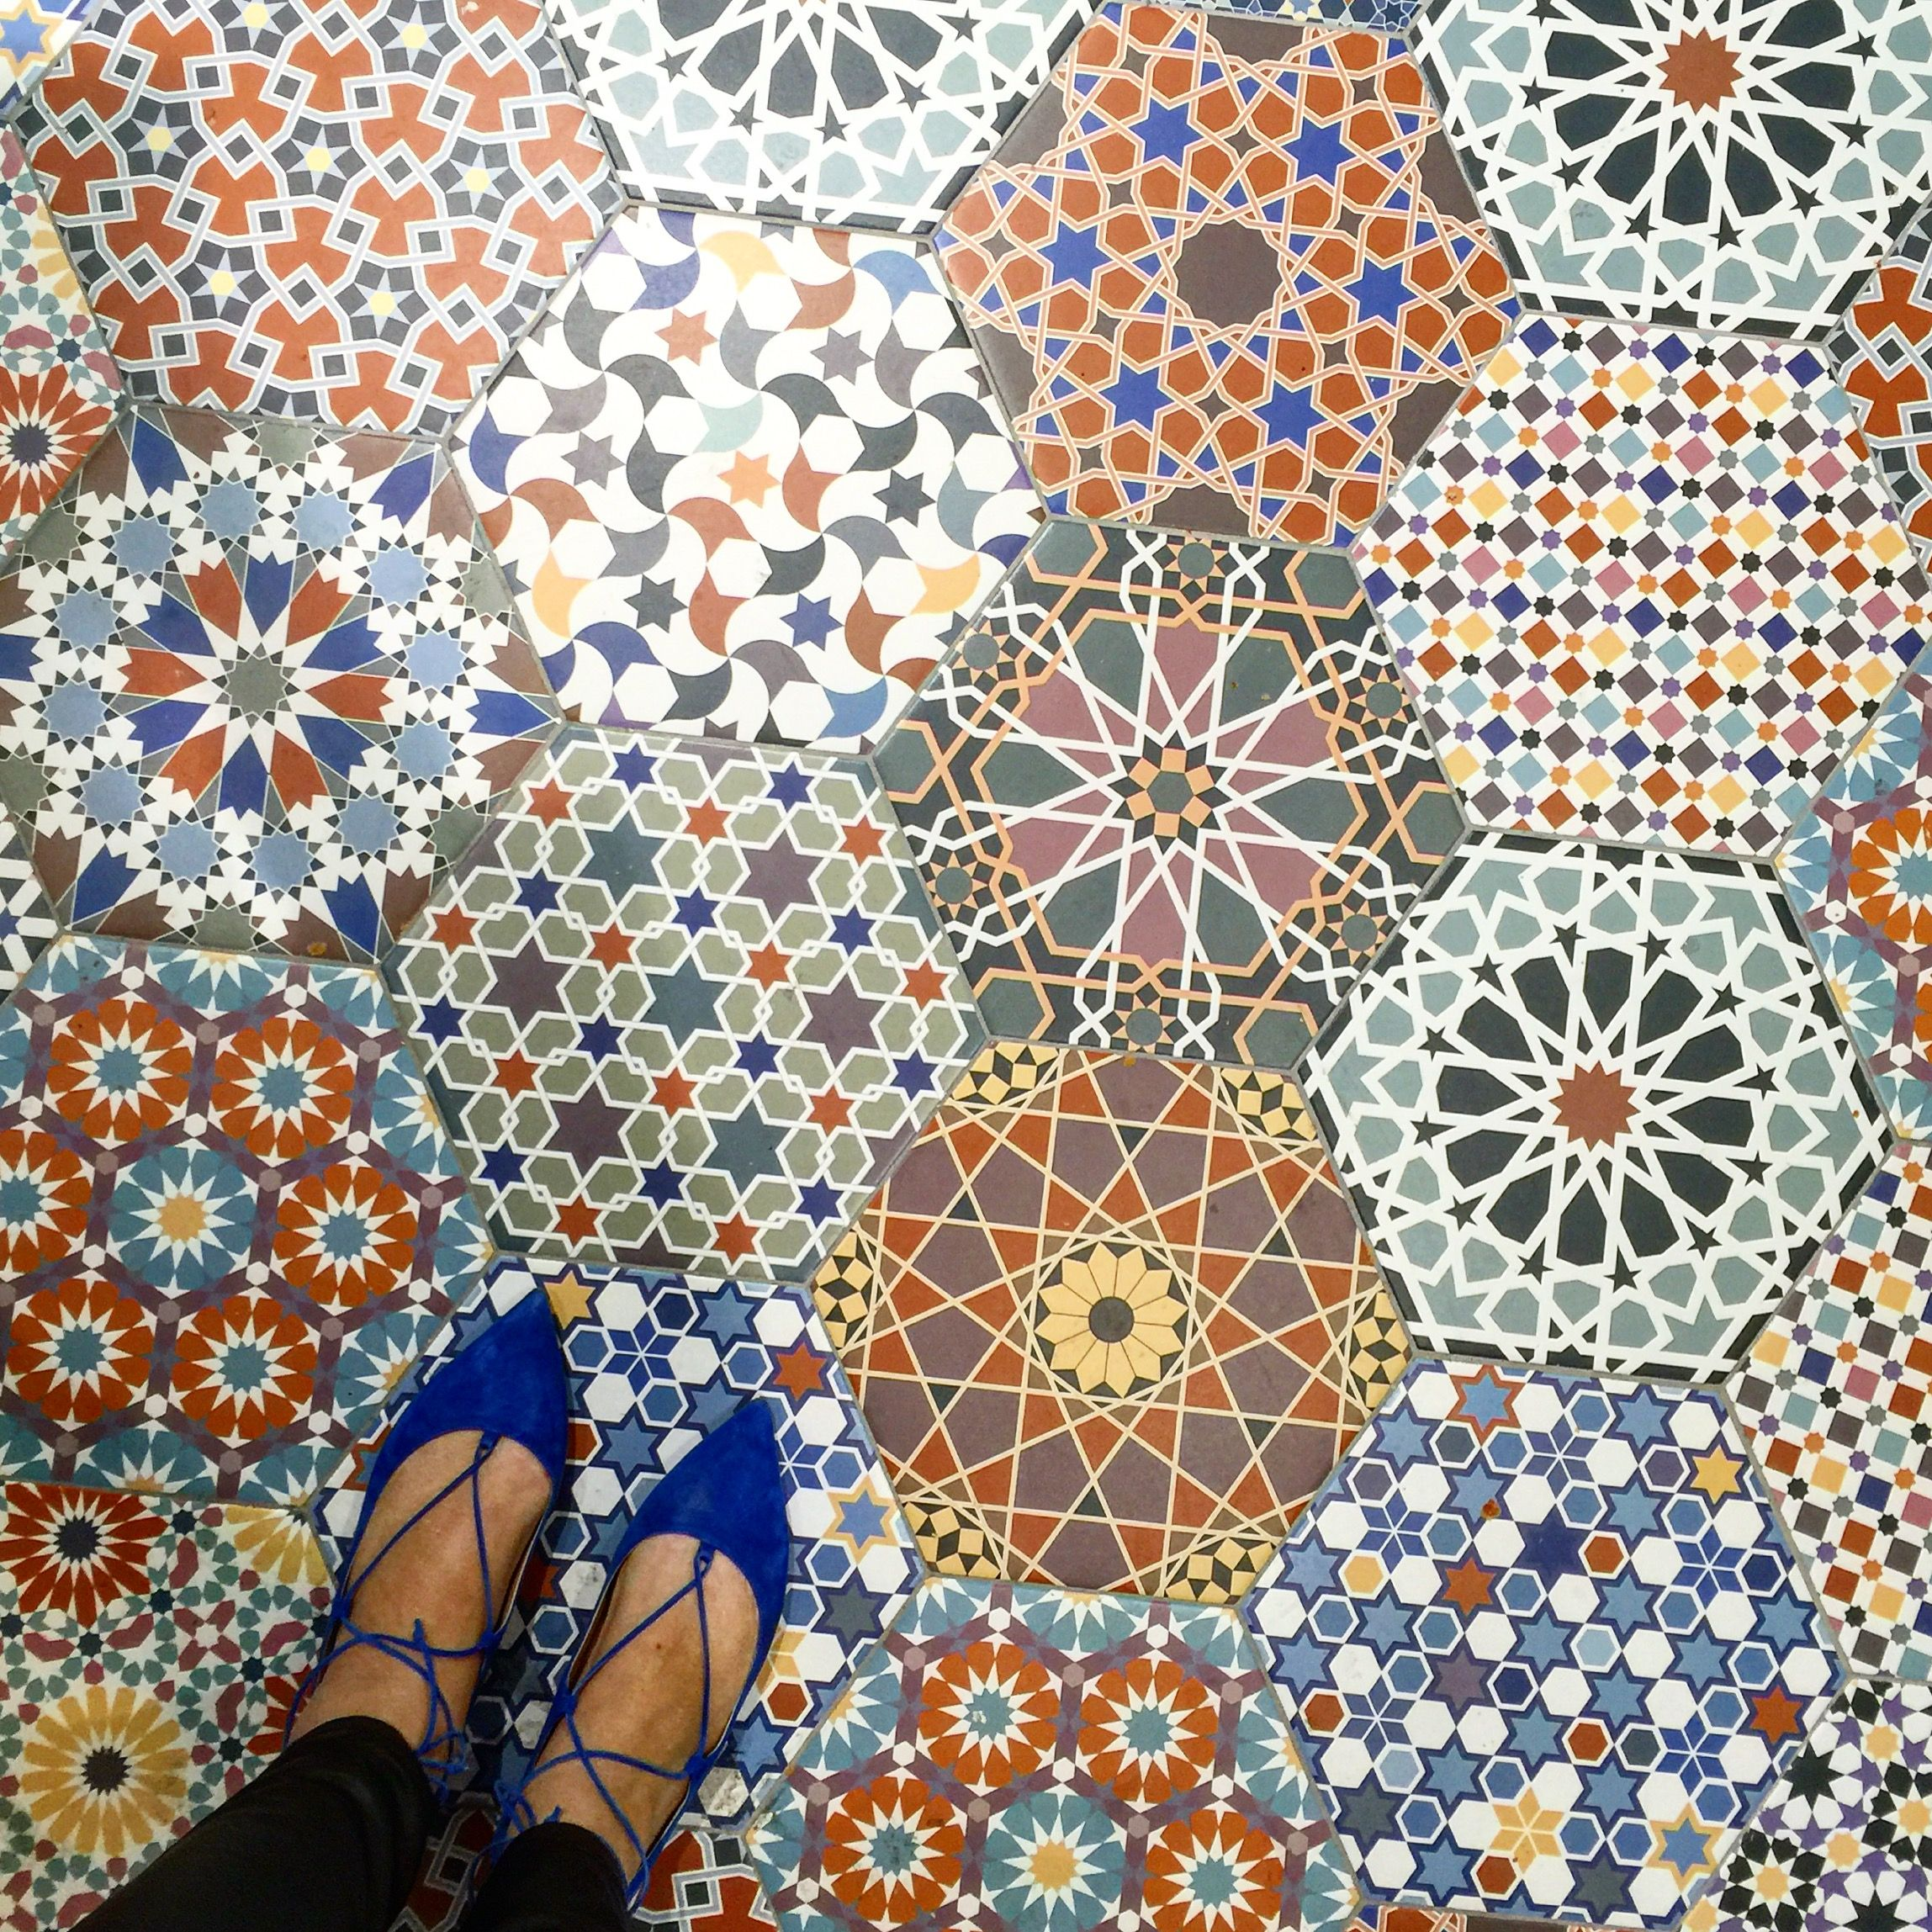 Spanish Tile For Miles At Cevisama Part 2